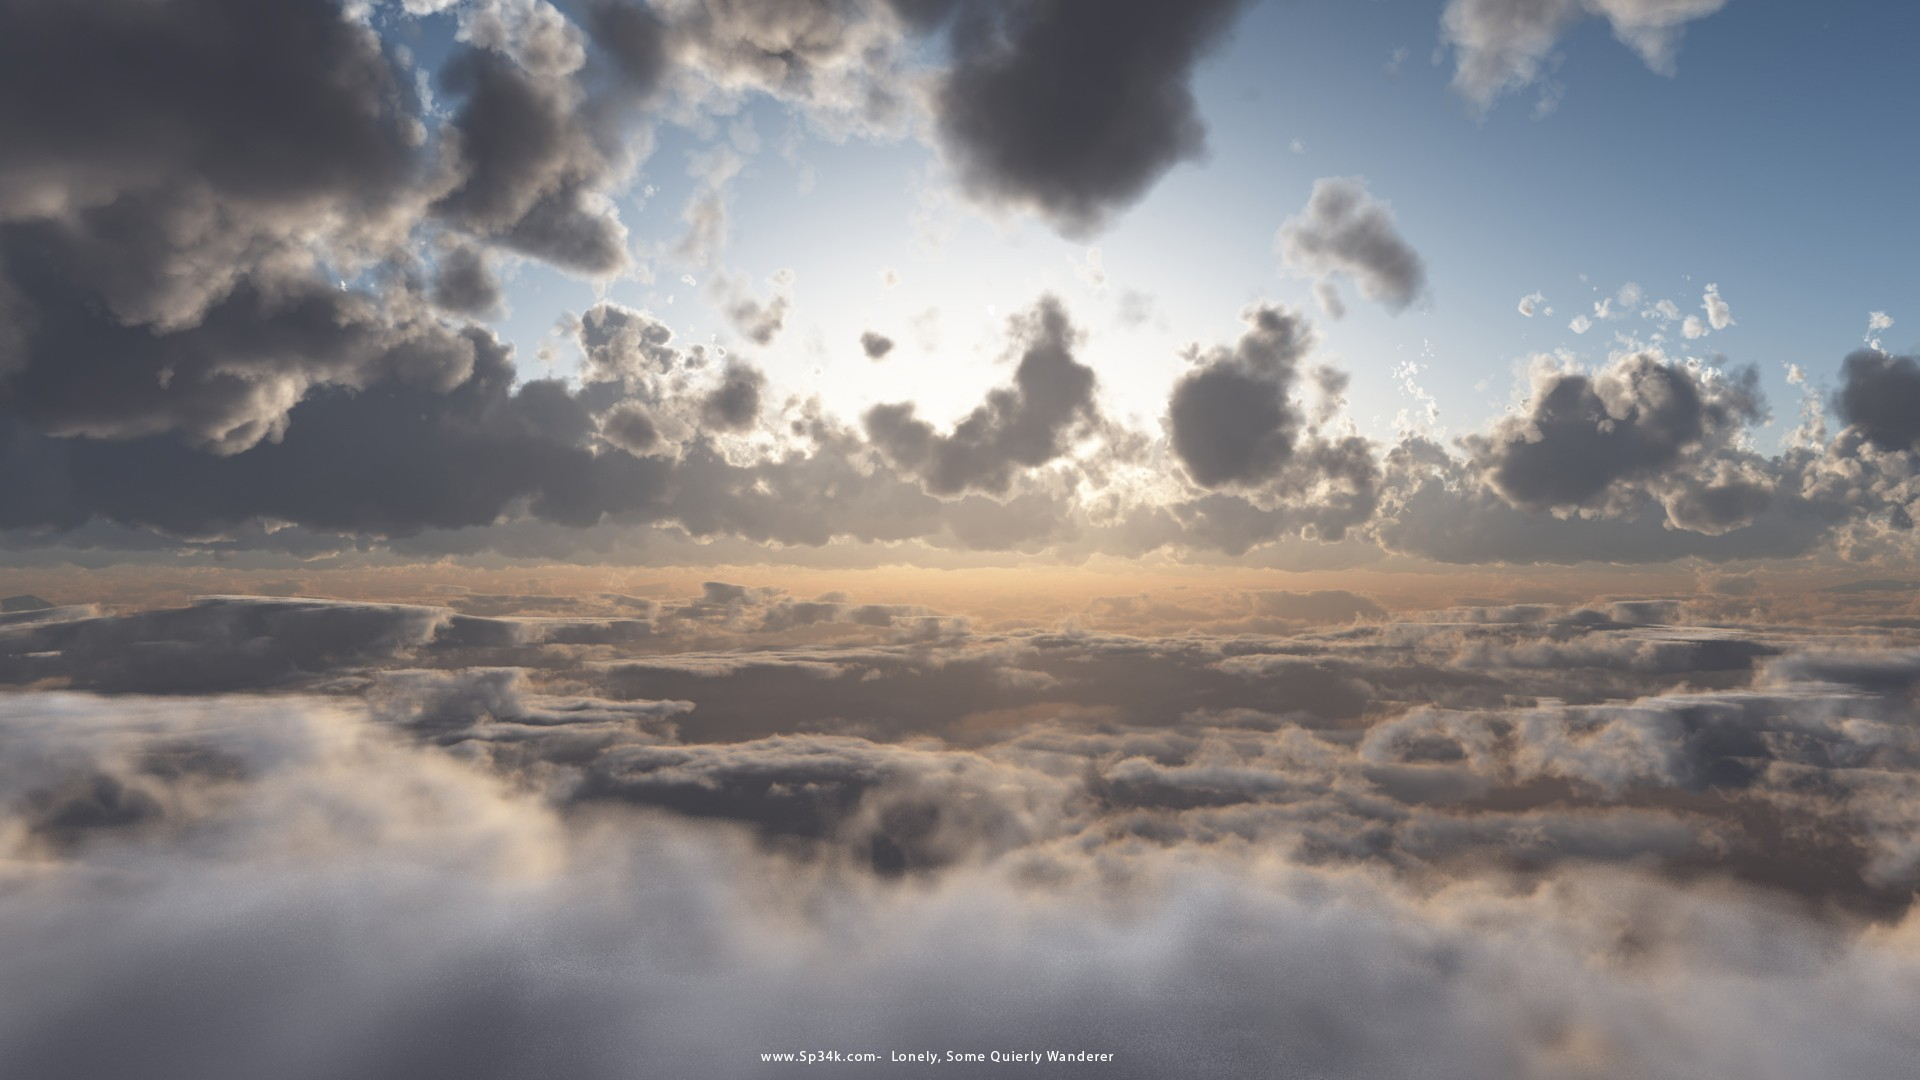 lonely realistic Vue e-on skies renders